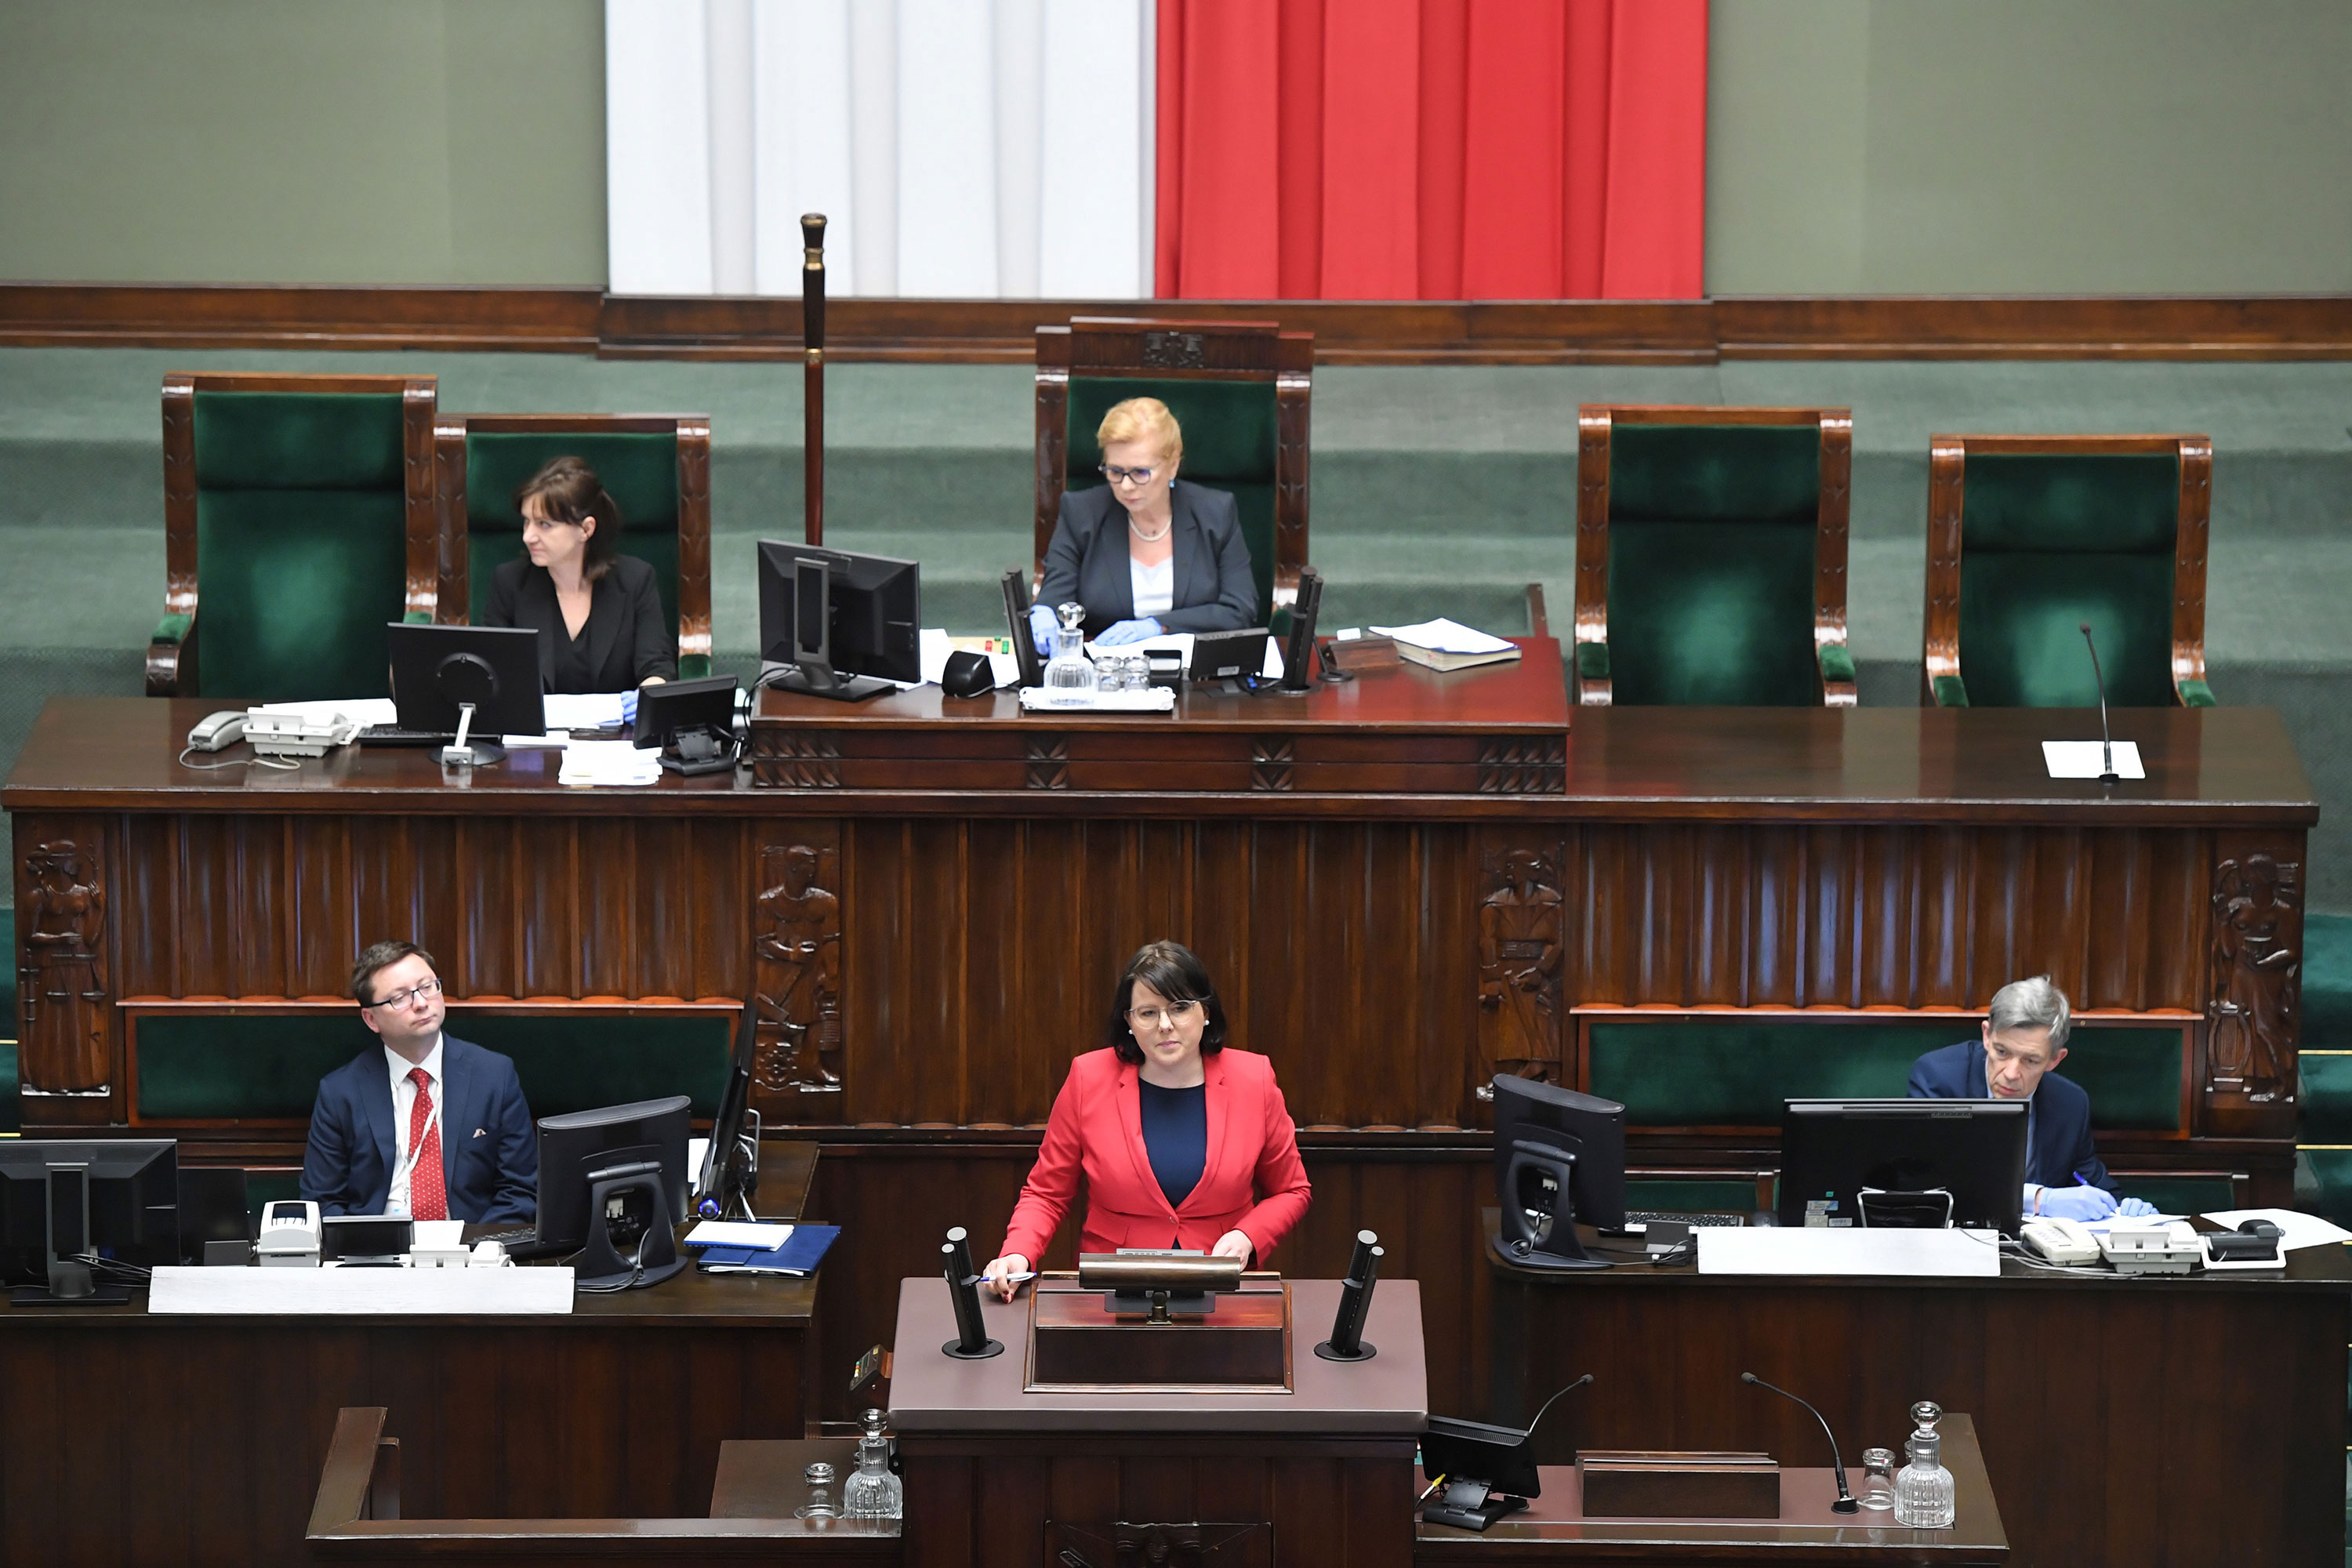 Representatives of the Life and Family Foundation with Kaja Godek take part in the parliamentary debate on the abortion bill at the Polish Parliament in Warsaw, Poland, April 15.